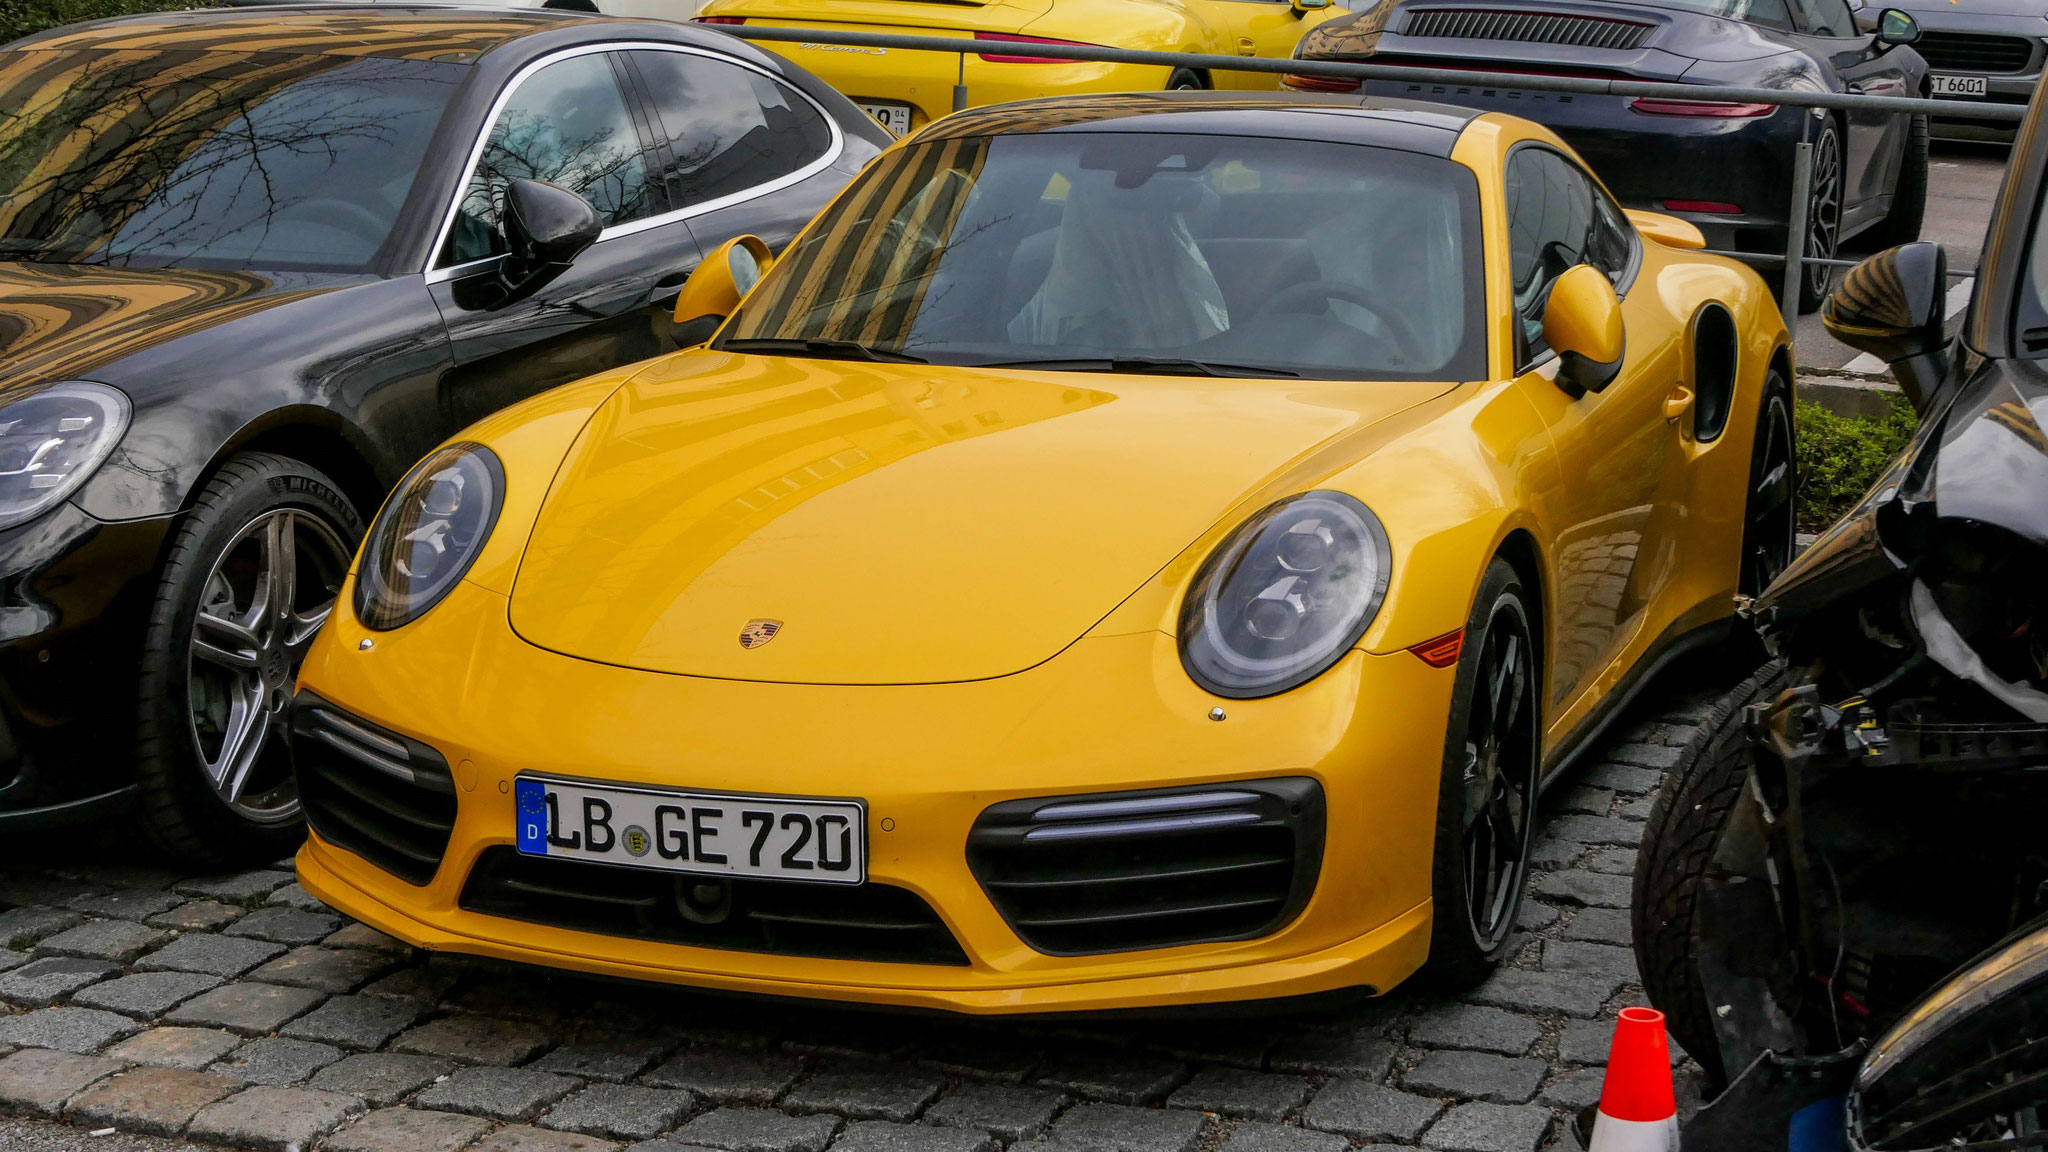 Porsche 911 Turbo - LB-GE-720